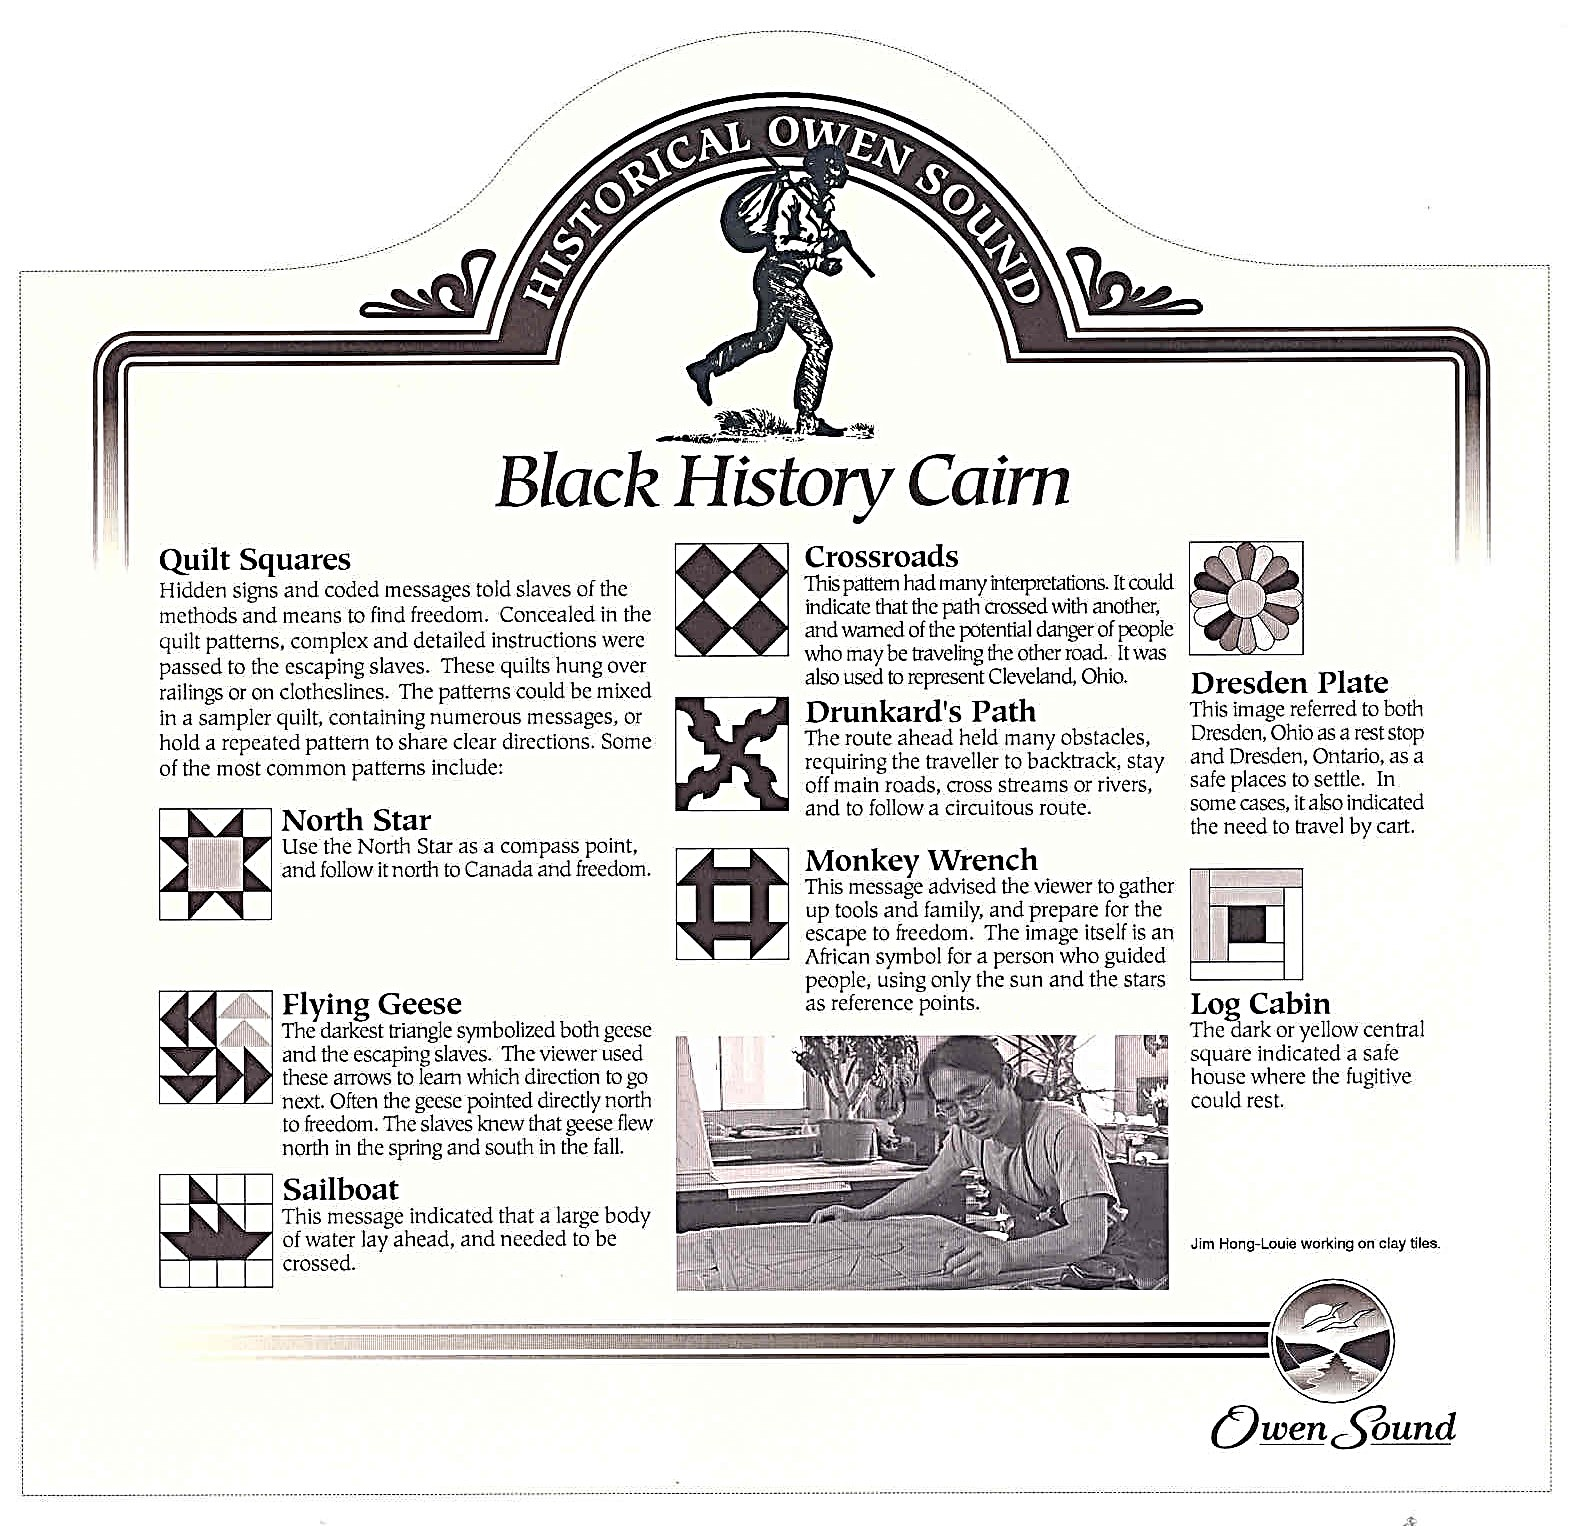 2004_BlackHistoryCairn2plaque_sharp.jpg